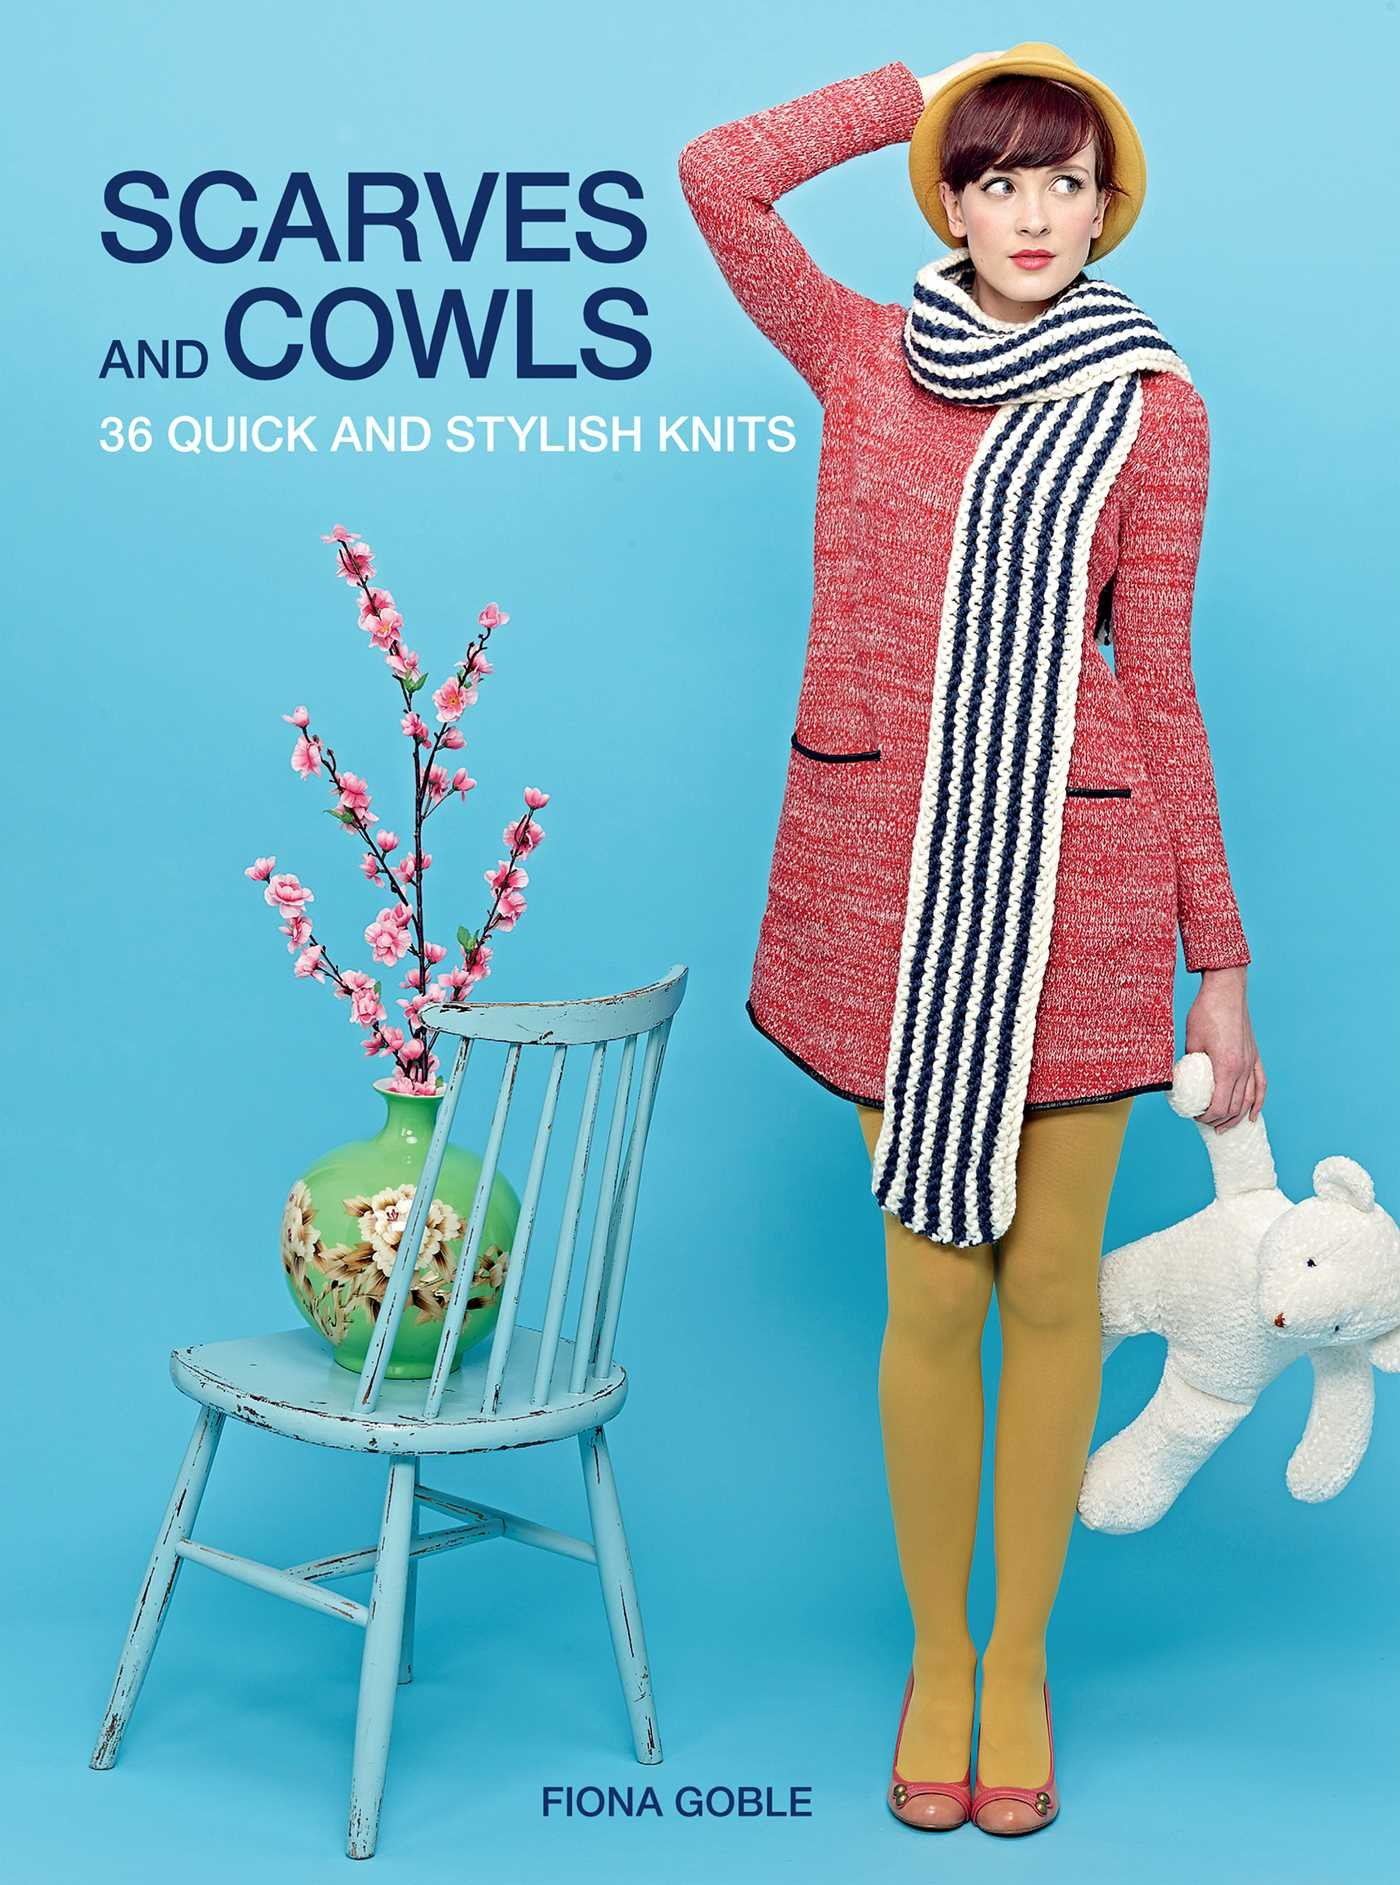 Download Scarves and Cowls: 36 quick and stylish knits PDF Text fb2 ebook